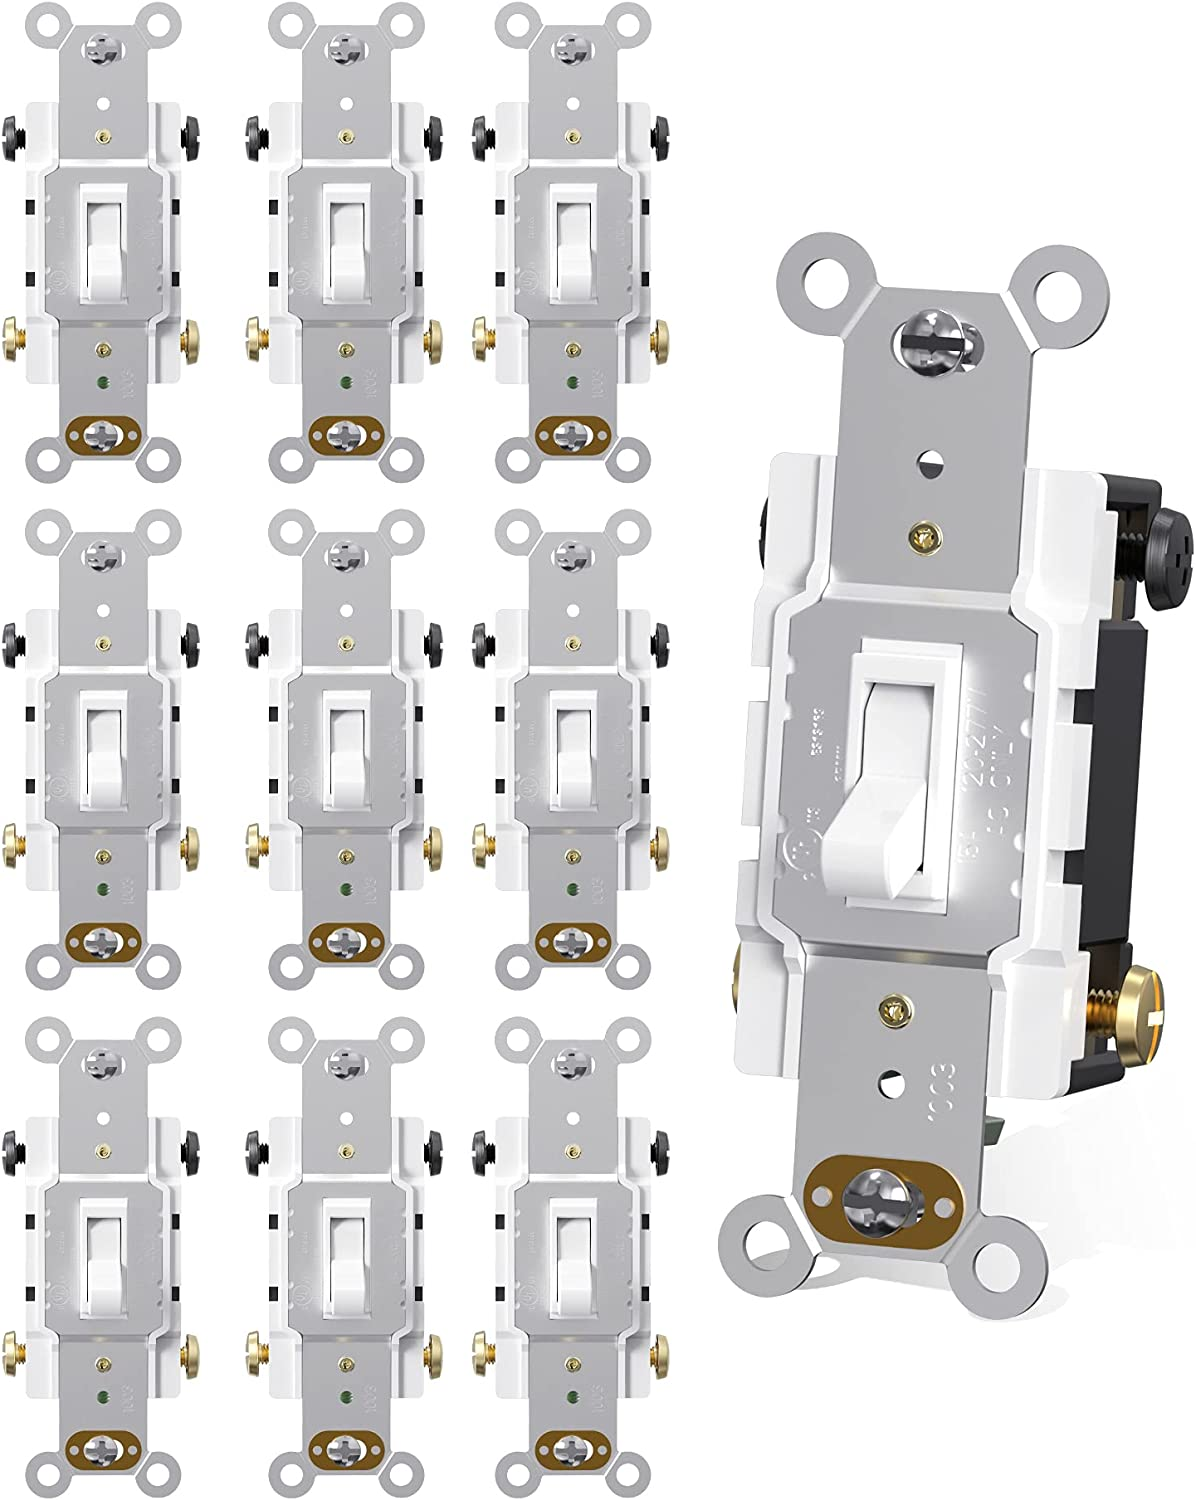 AIDA White Toggle Light Inexpensive Switch 4 Resident Way Screw Recommended Grounding